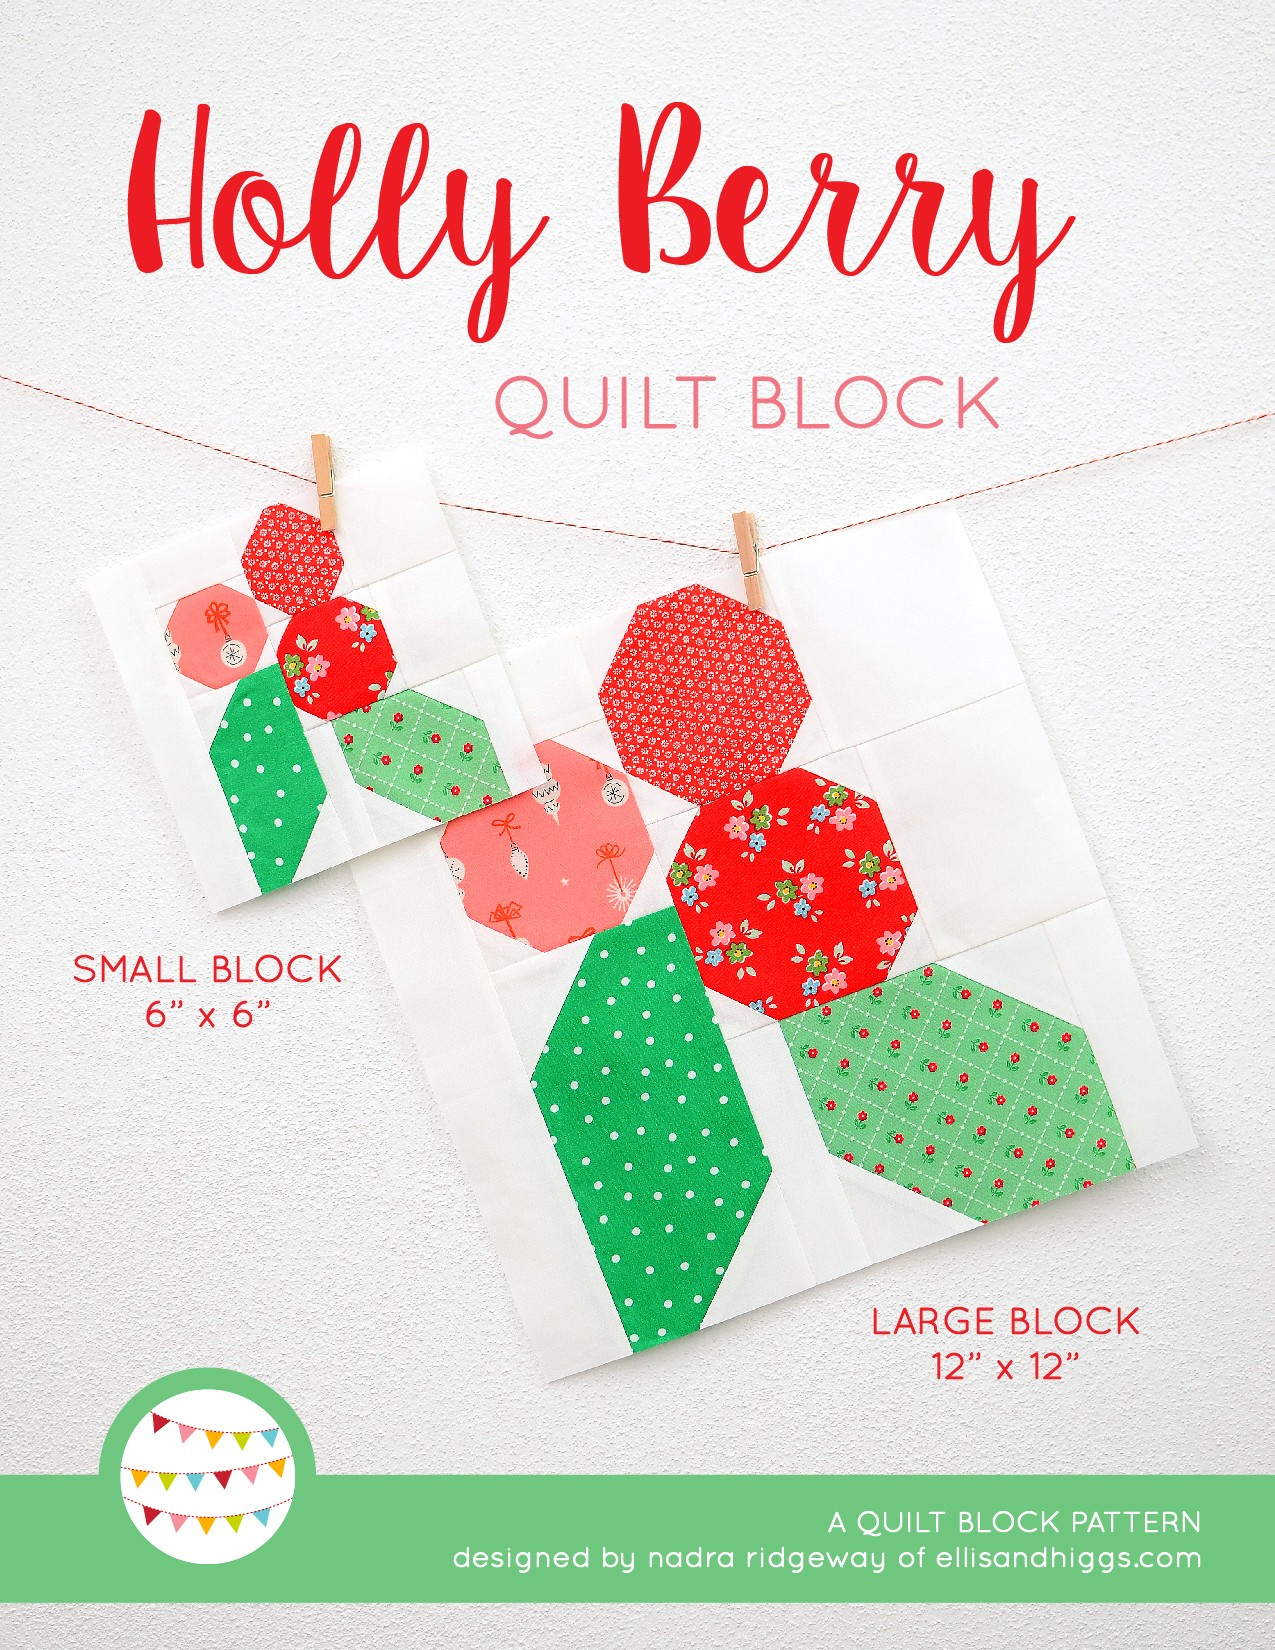 Holly Berry quilt block in two sizes hanging on a wall - Christmas quilt pattern